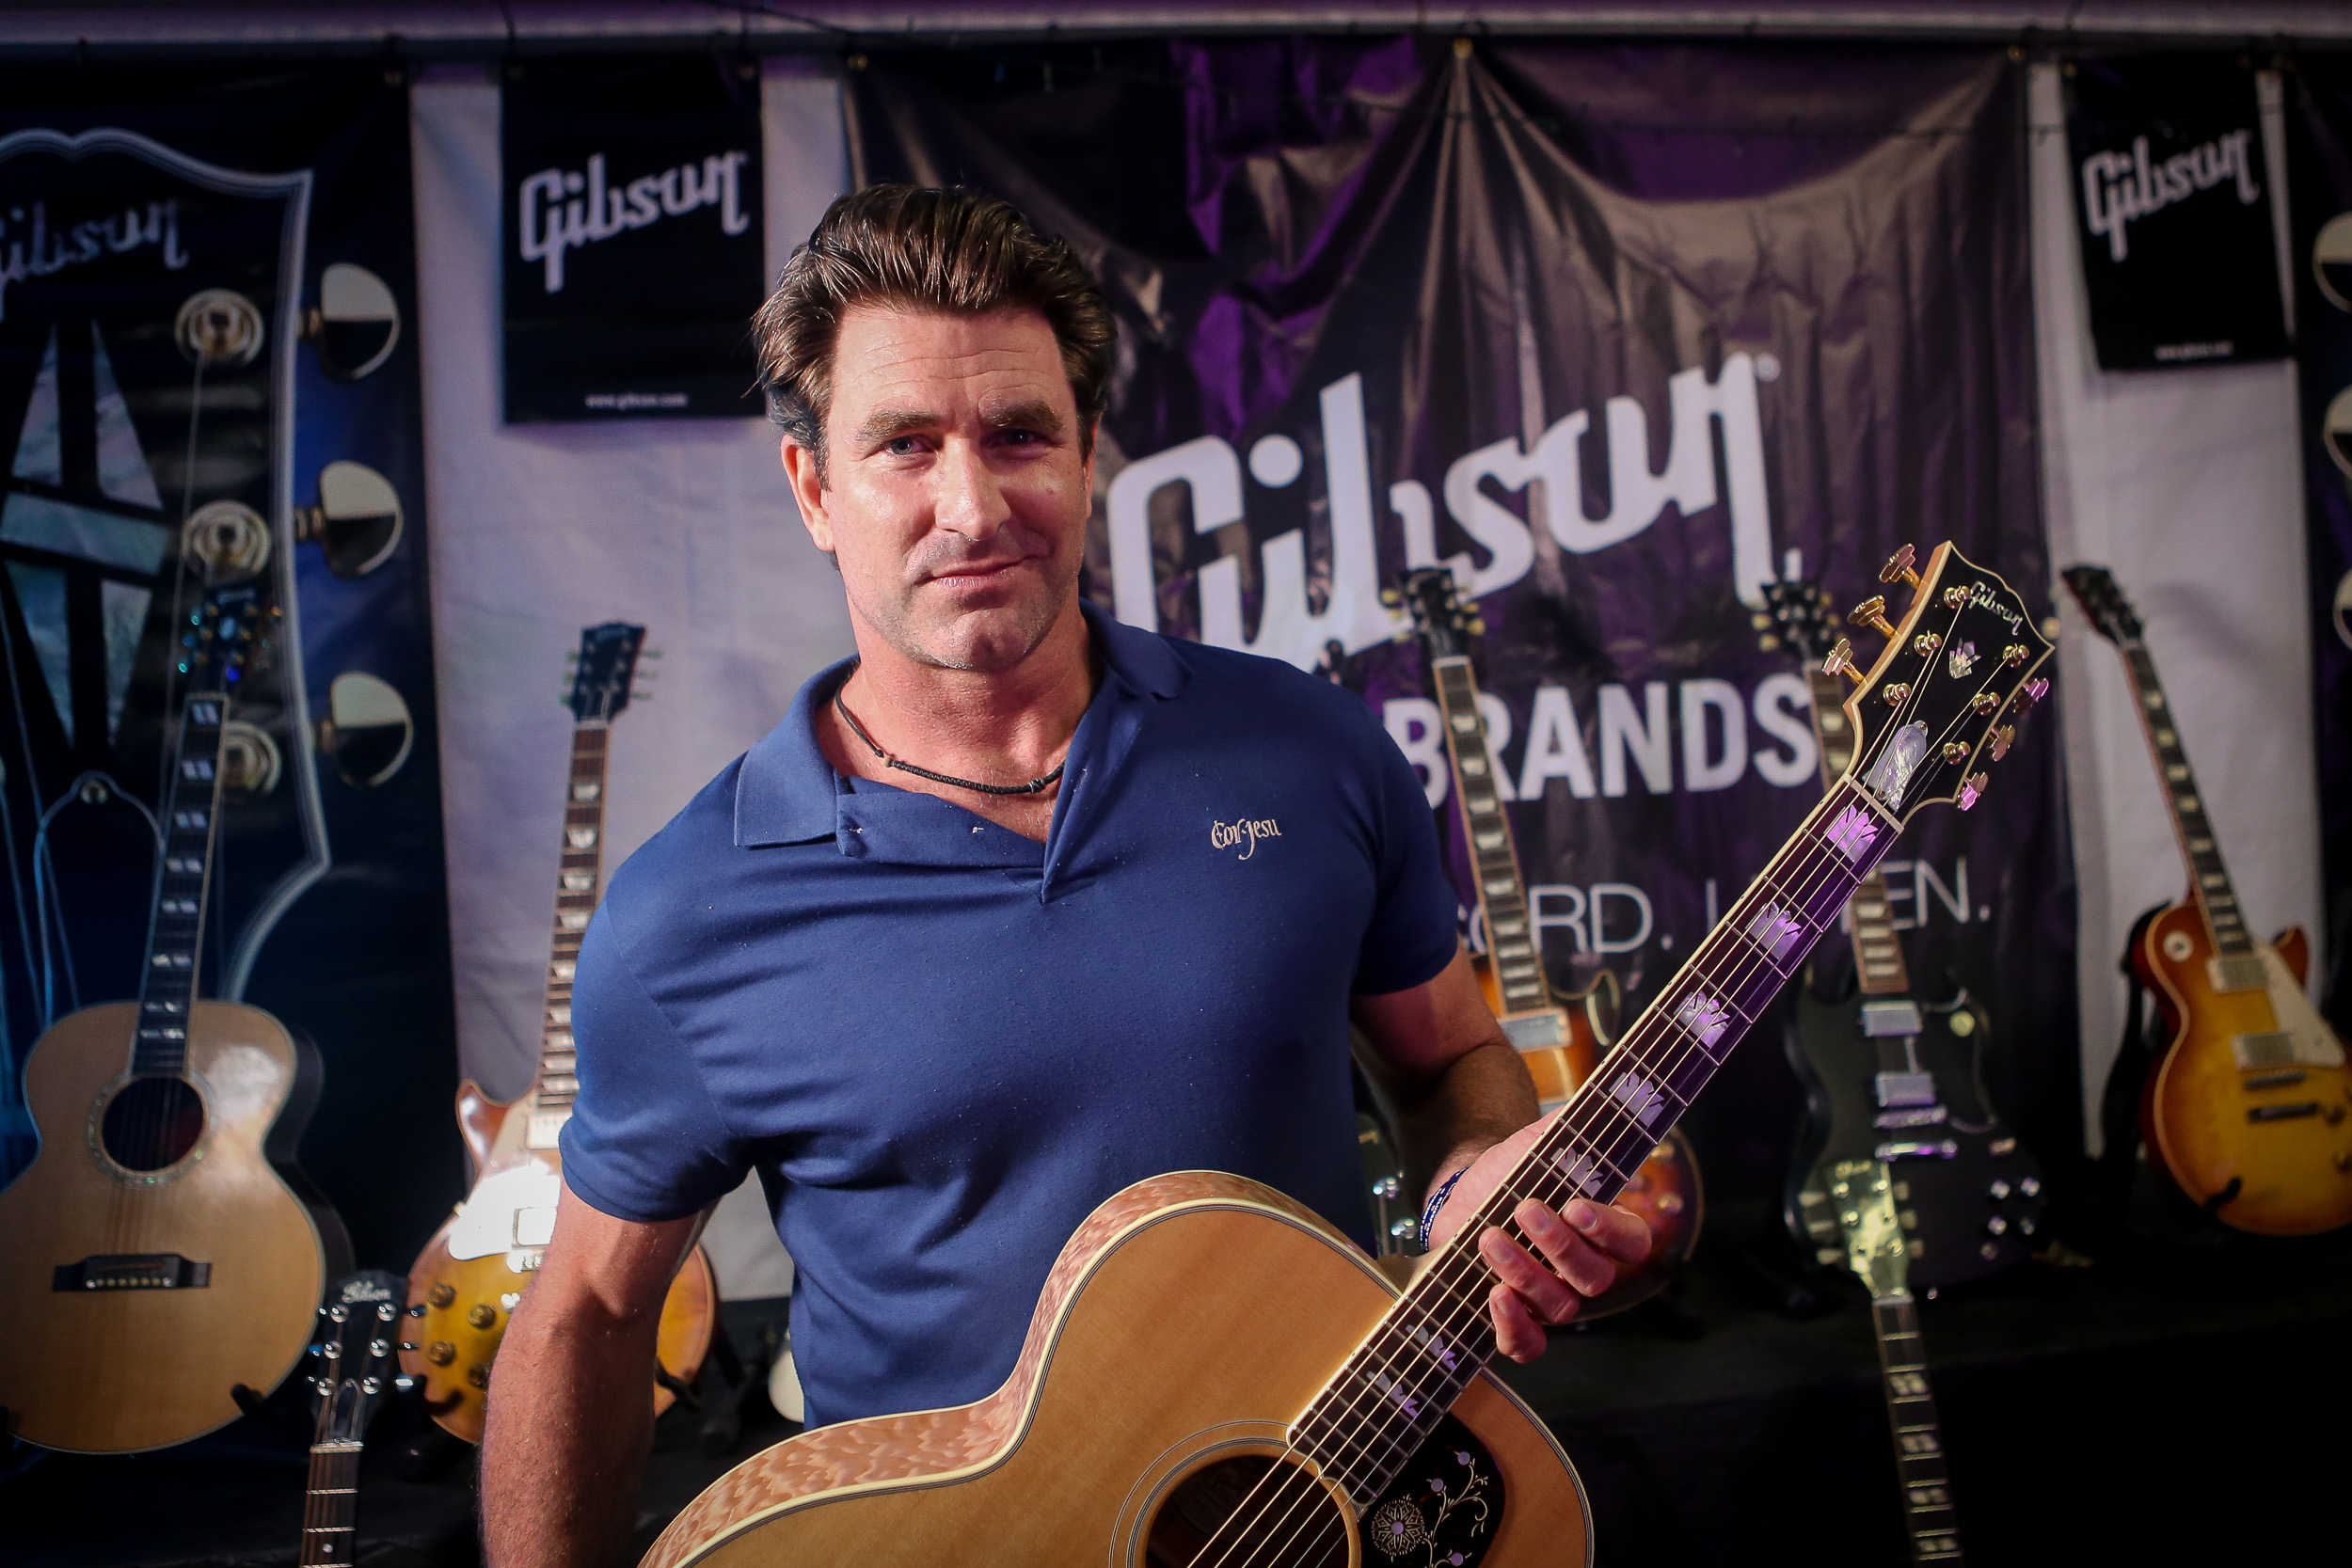 pete murray, backstage in the gibson tent